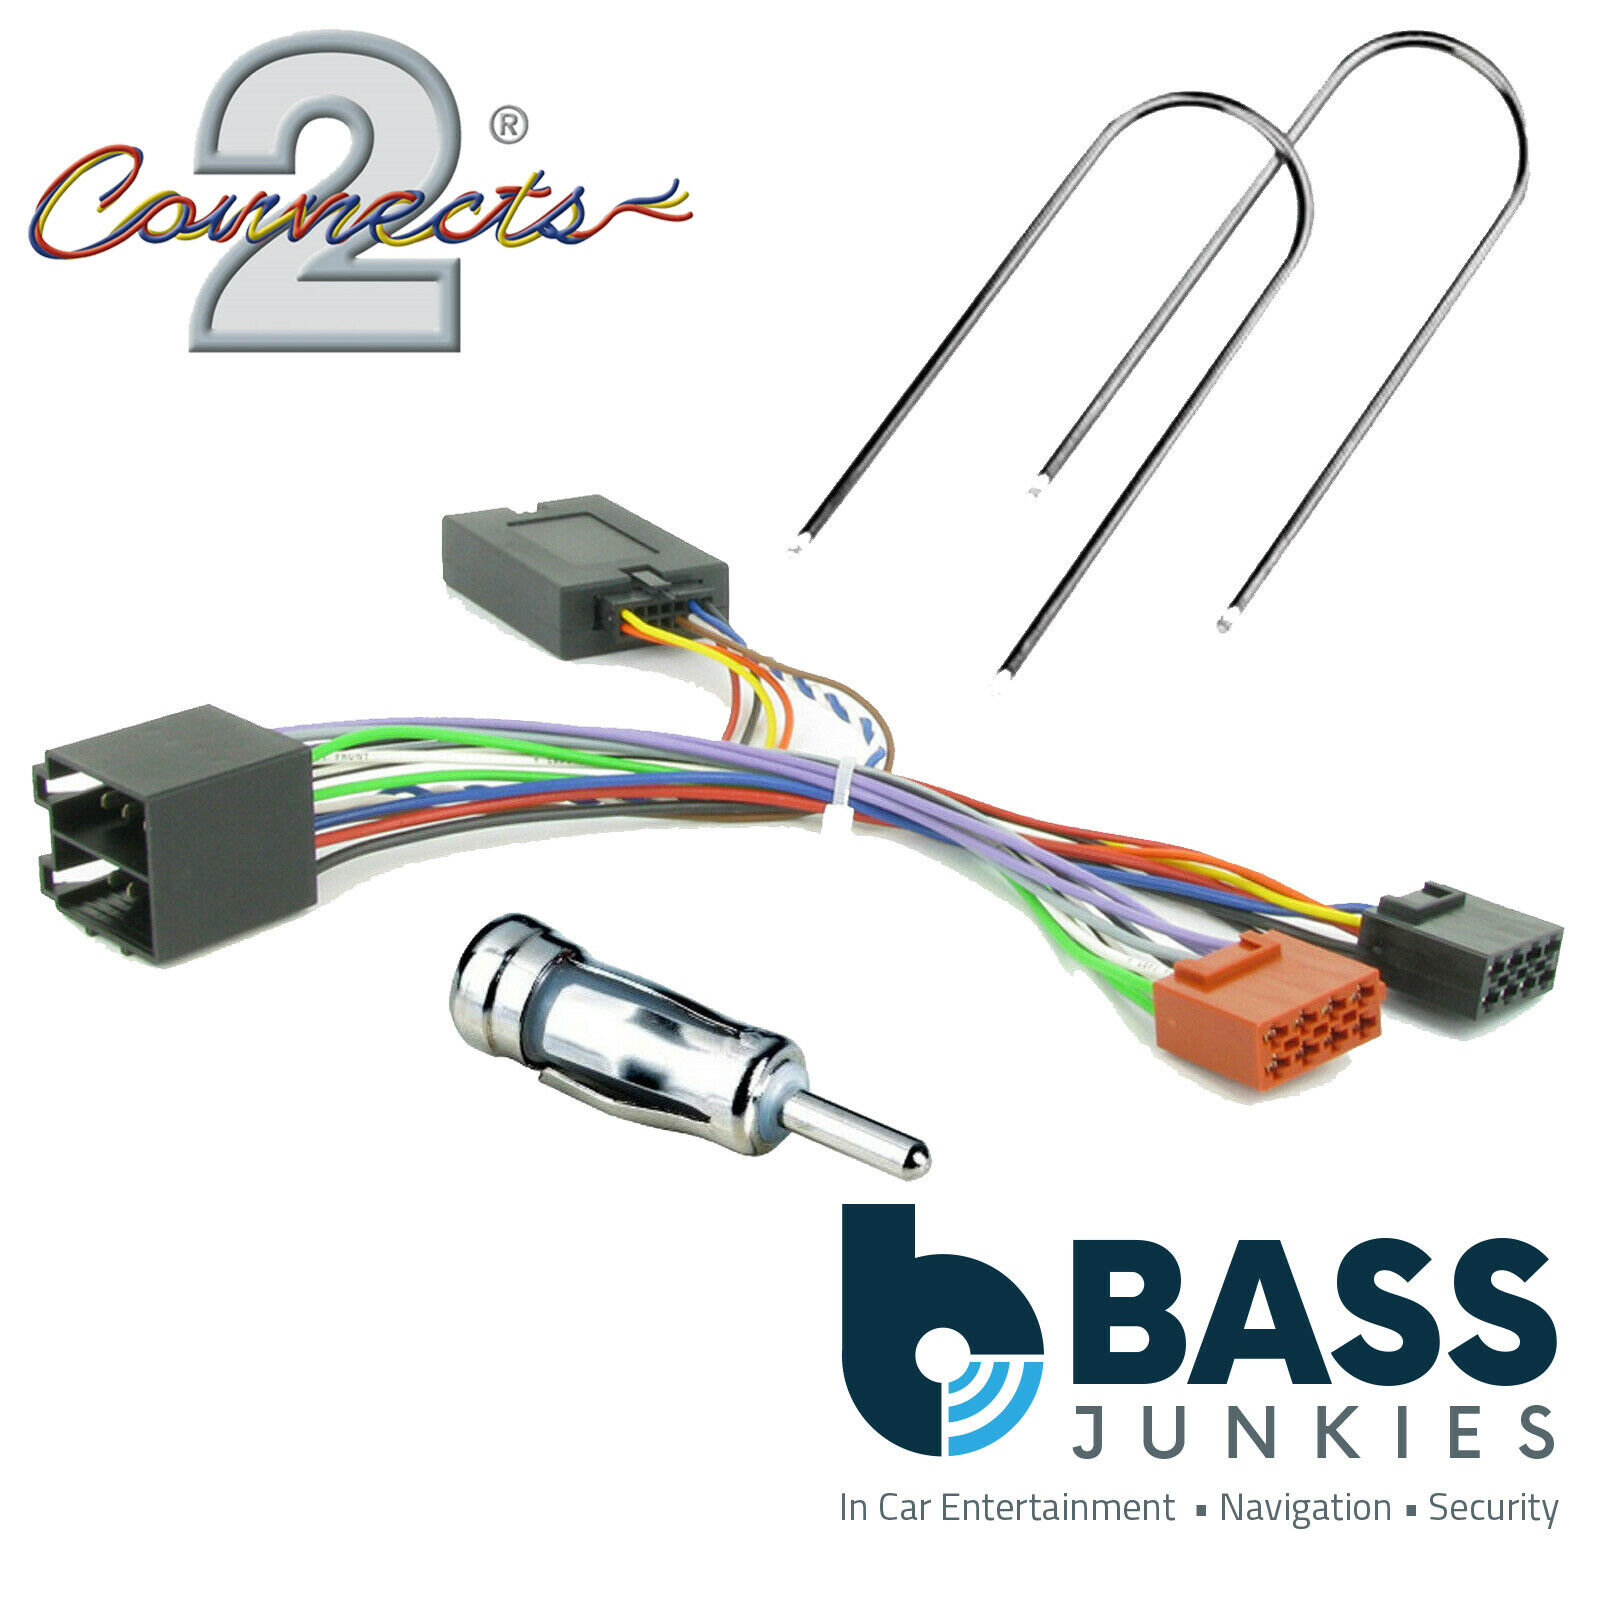 Citroen Xsara Picasso C2 C3 C5 C8 Vdo Clarion Rd3 Car Stereo Wiring Radio Harness 14 Pin Lead 1 Of 1free Shipping See More